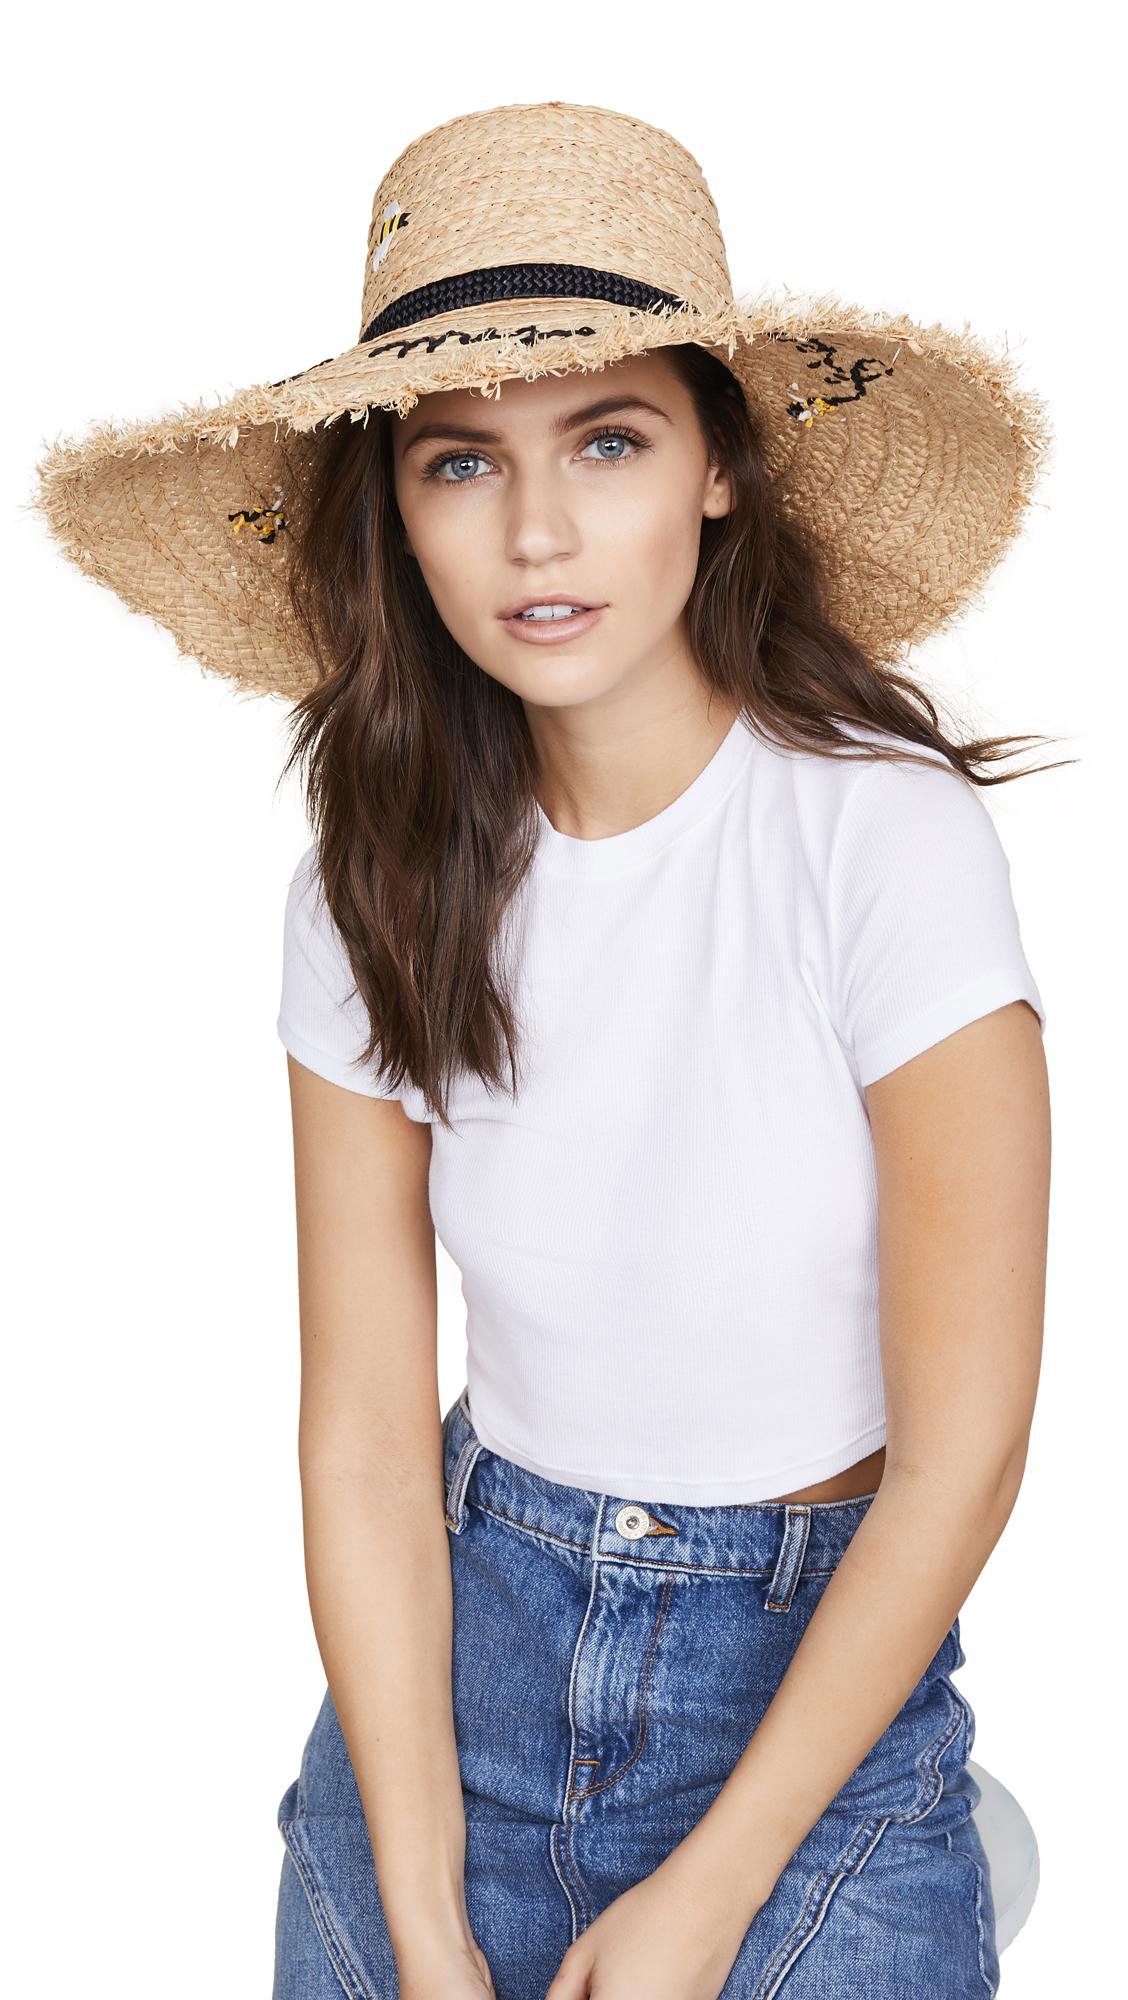 Lyst - Kate Spade Bee My Honey Sun Hat in Natural 5021488d64c